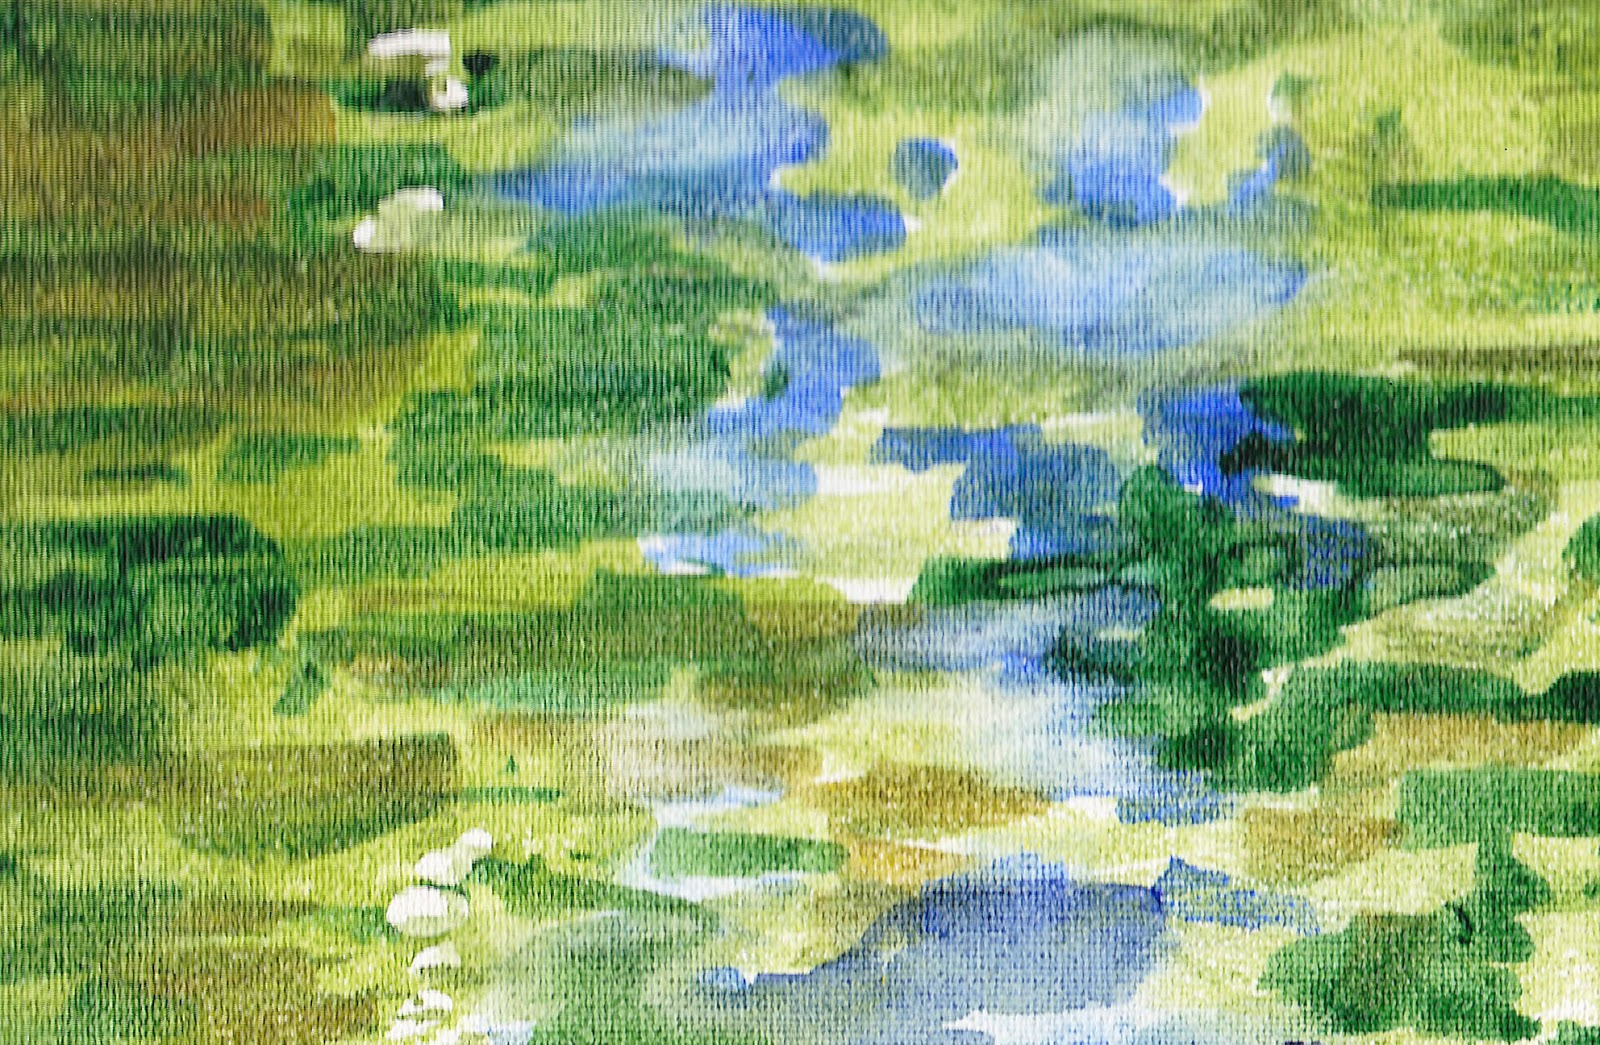 impressionism in watercolors